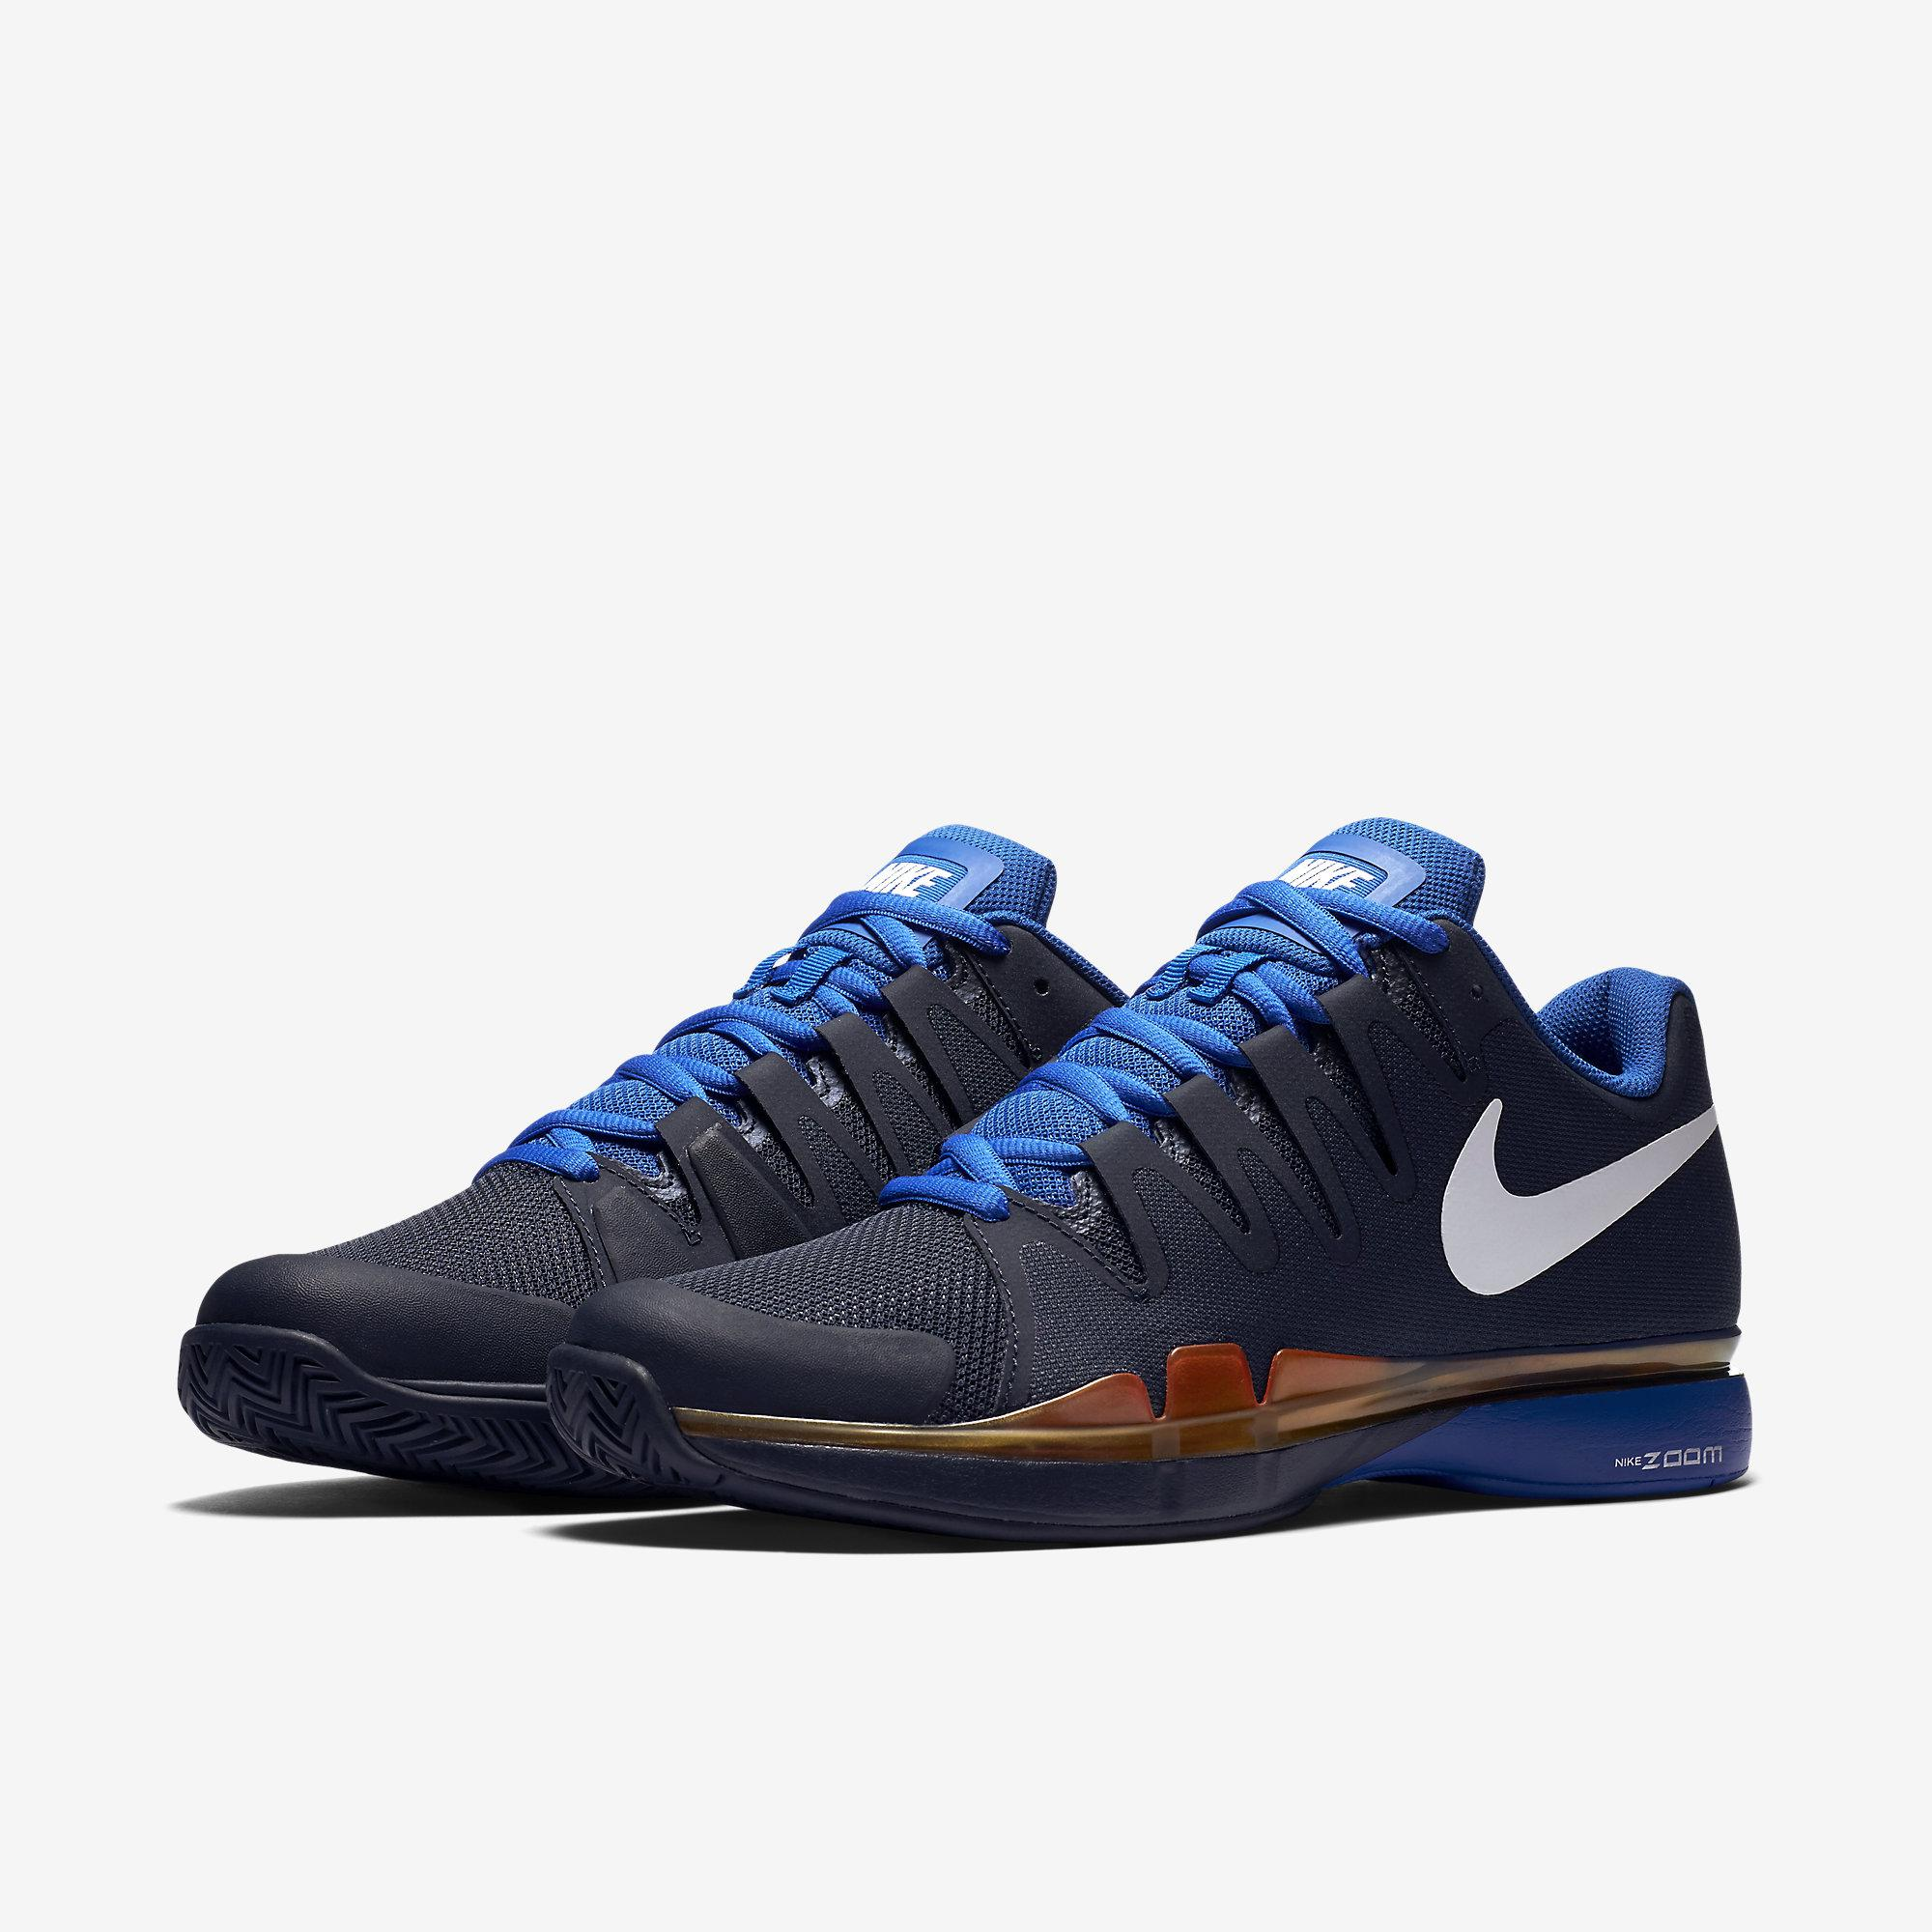 Out Of Stock. Nike Mens Zoom Vapor 9.5 Tour Tennis Shoes ...